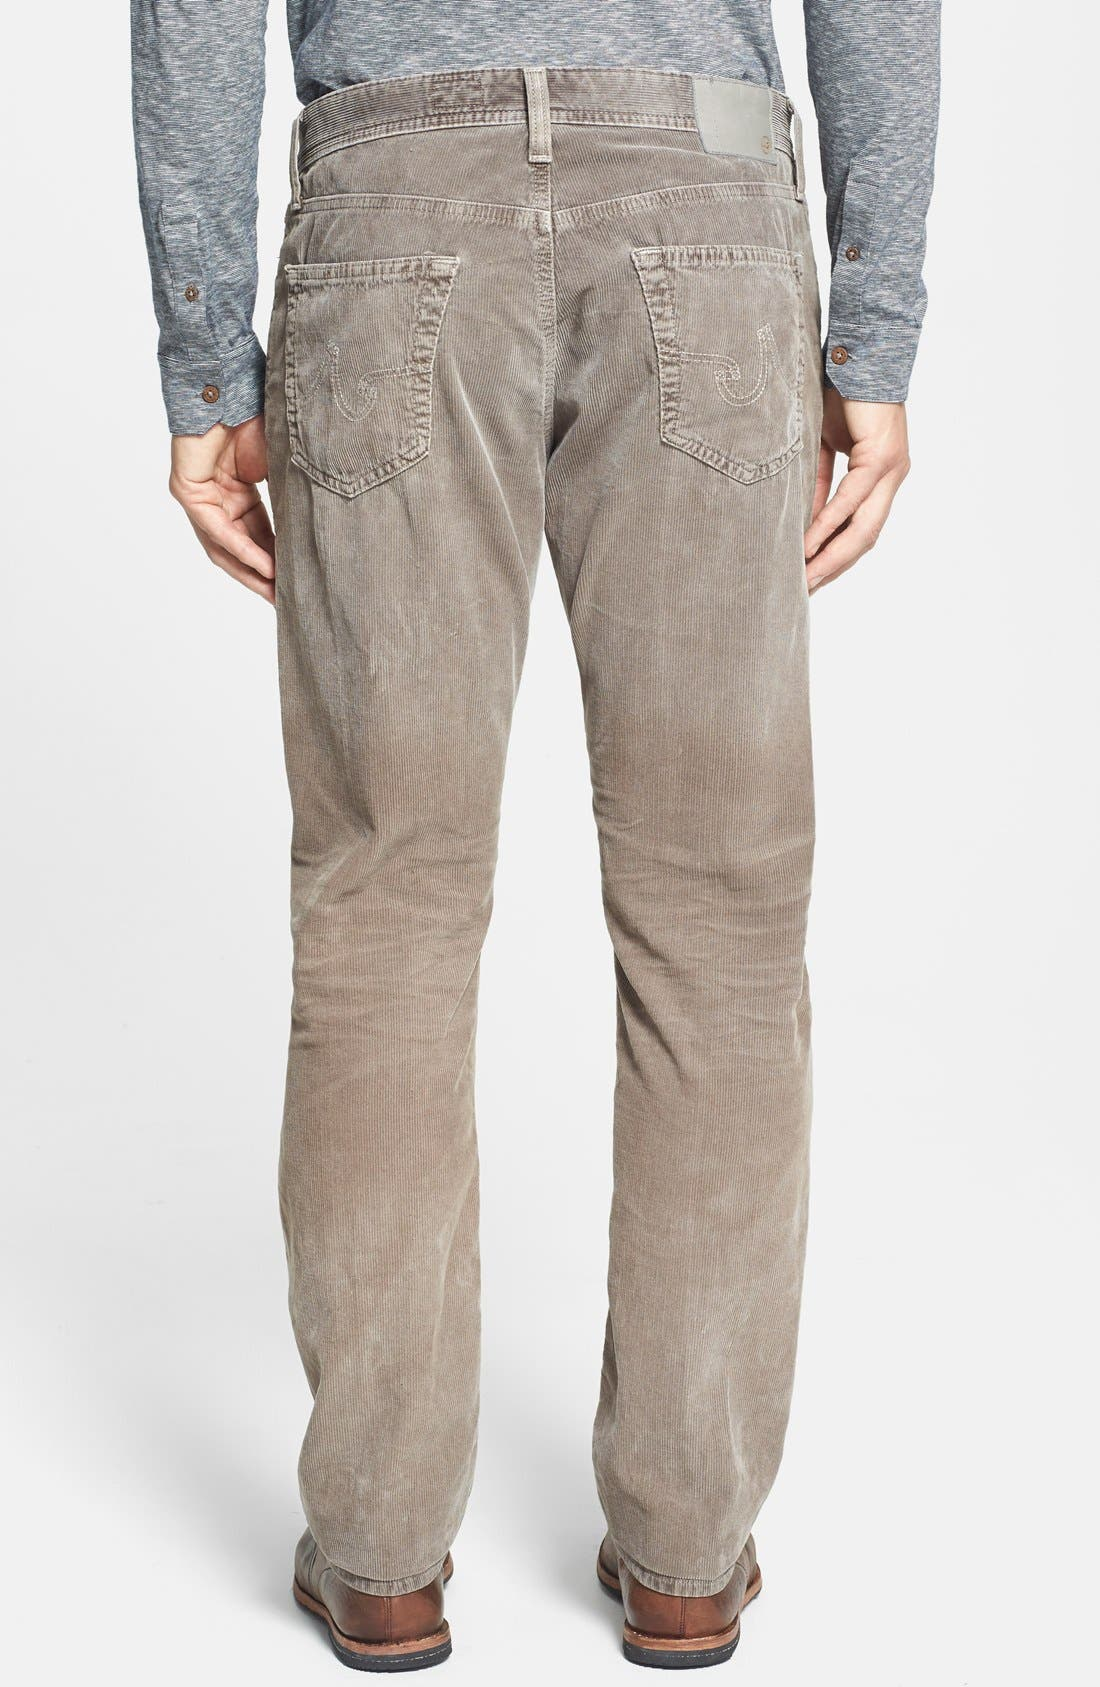 'Graduate' Tailored Straight Leg Corduroy Pants,                             Alternate thumbnail 27, color,